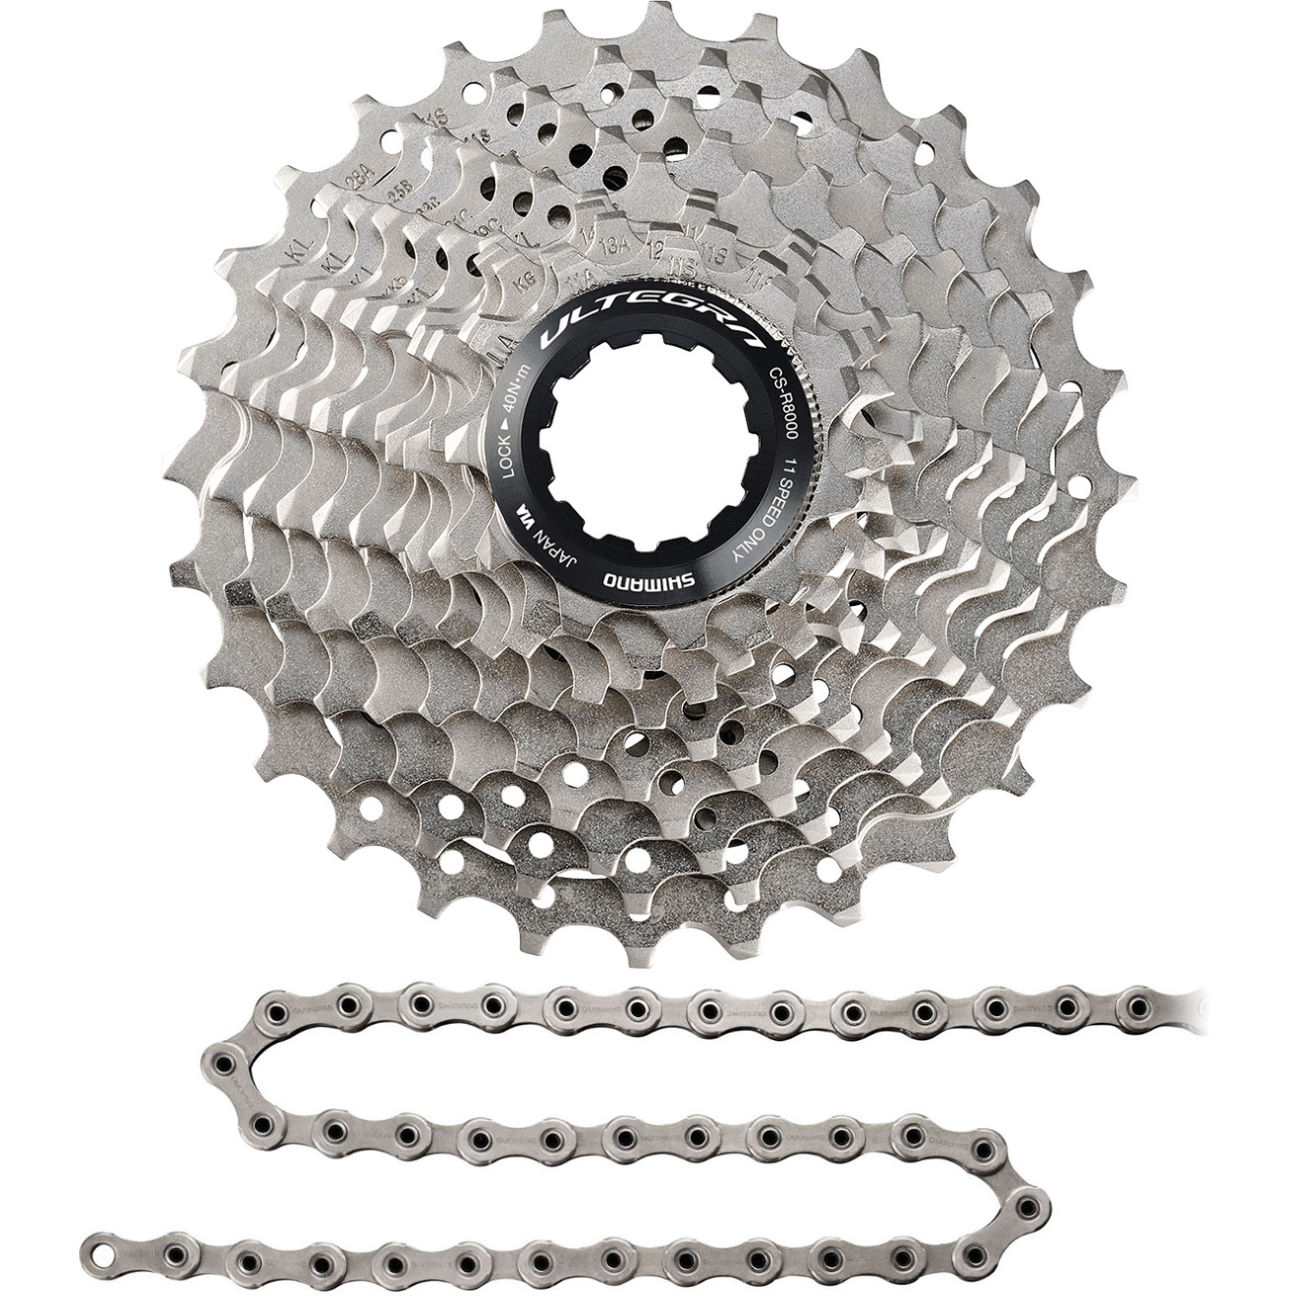 0916b688457 Wiggle Cycle To Work | Shimano Ultegra 11sp Cassette and Chain ...